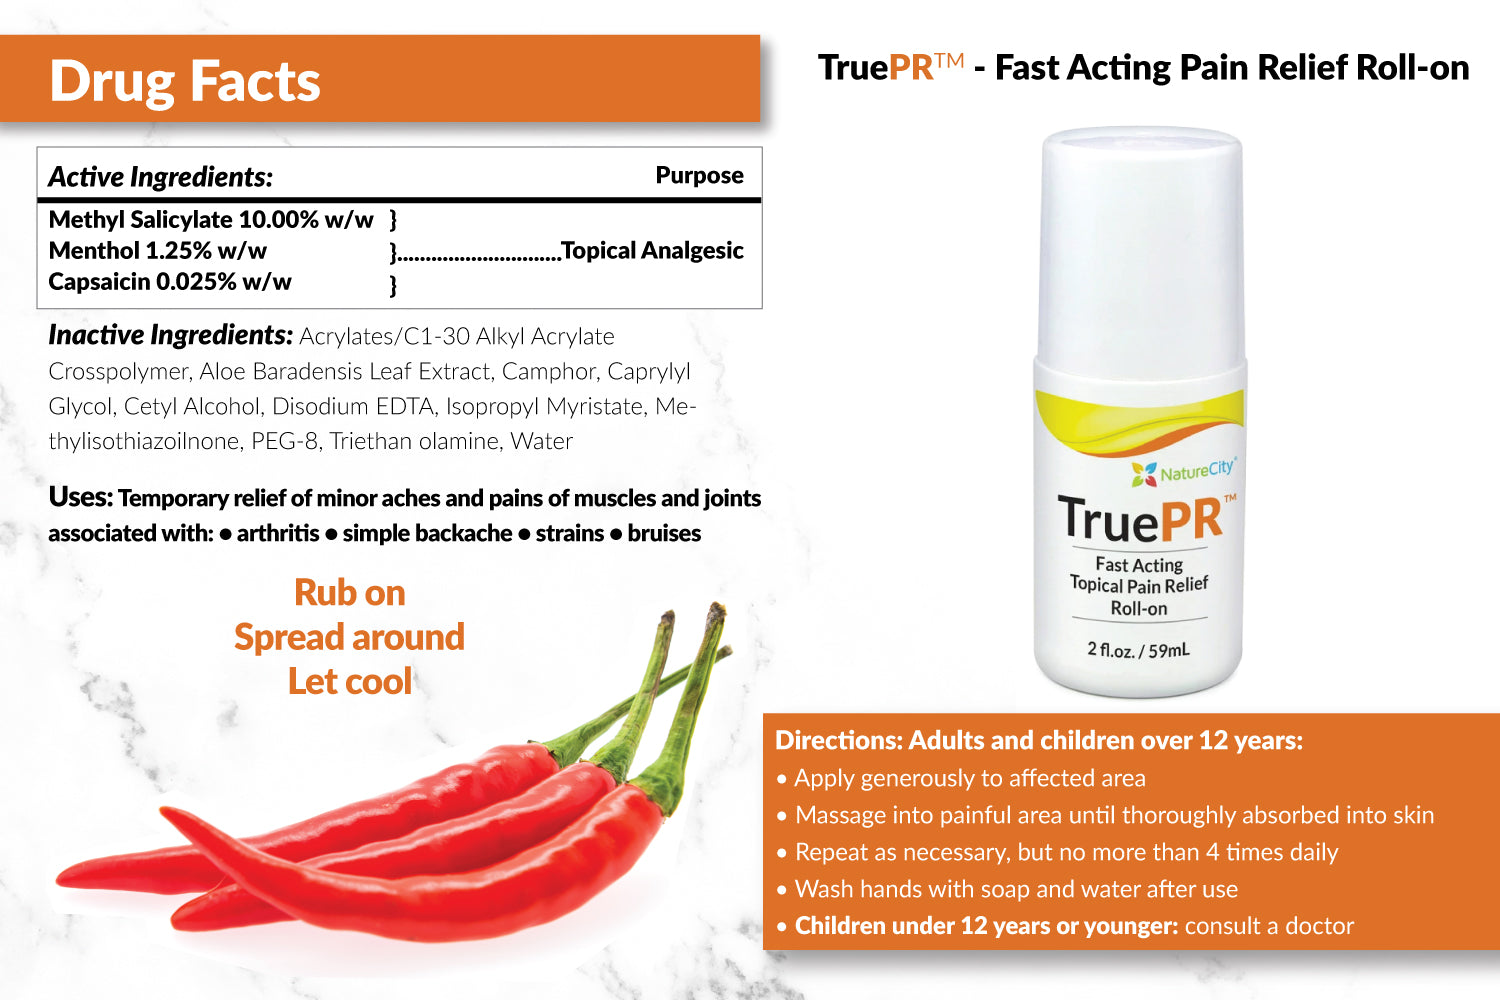 TruePR Supplement Facts and Directions